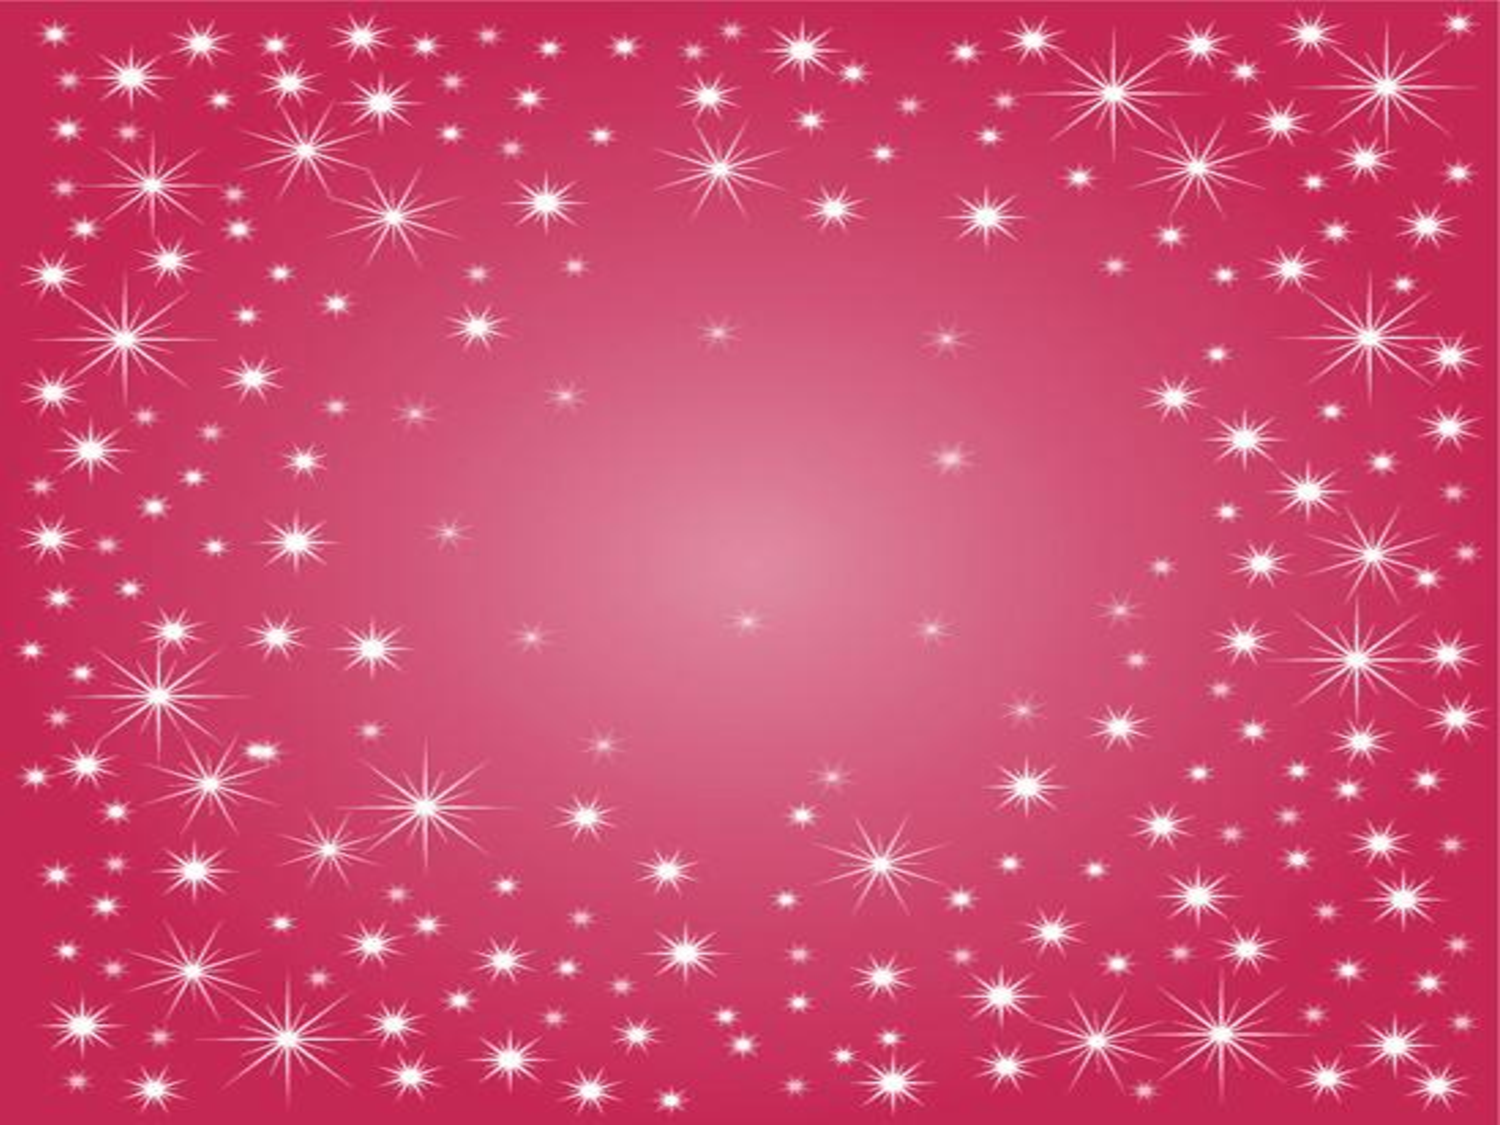 glitter animated star background   Free Powerpoint ...